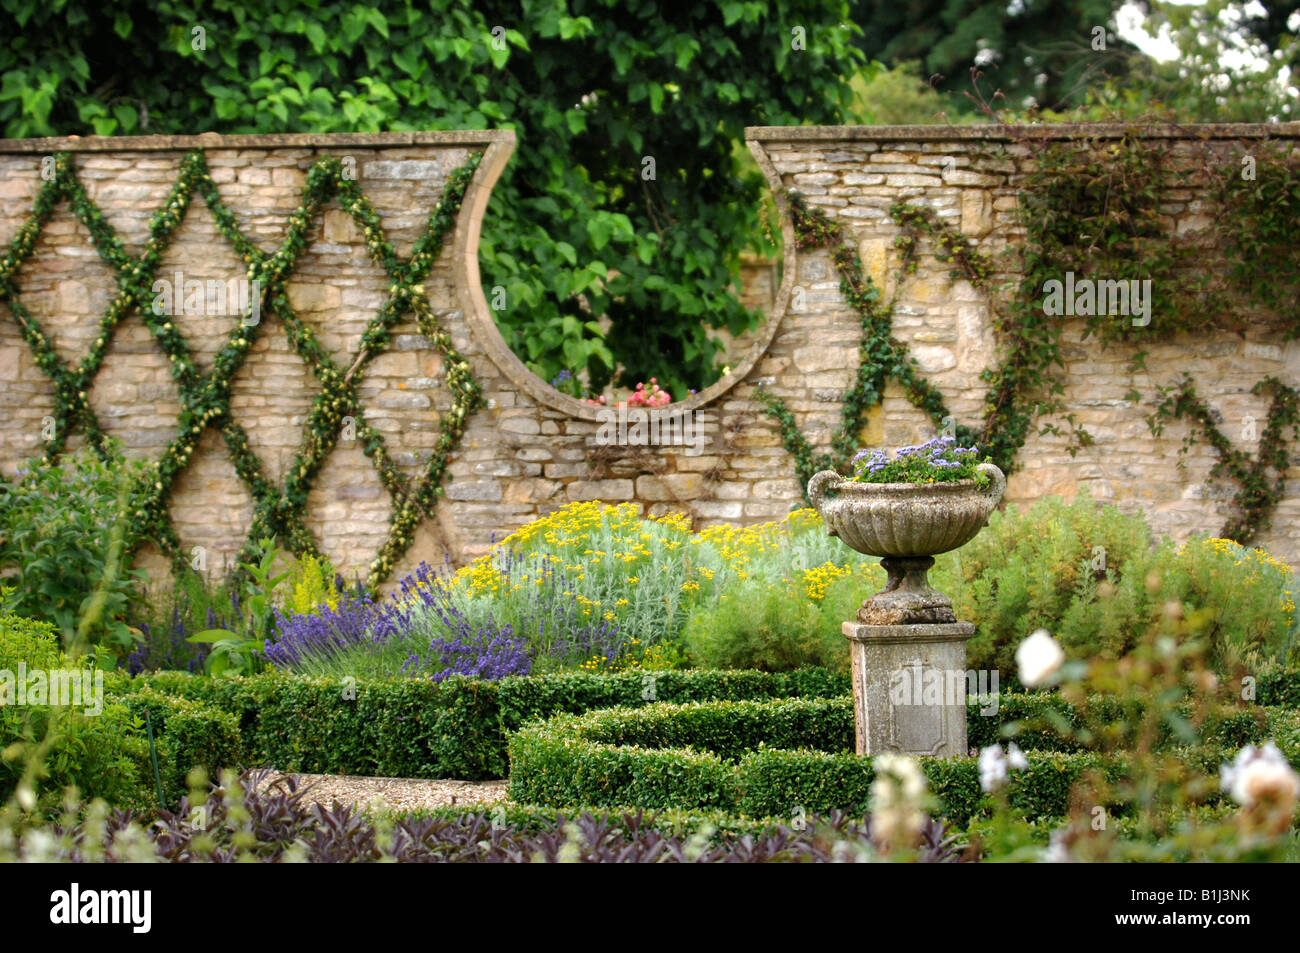 An Antique Stone Urn In A Walled Garden With Dwarf Box